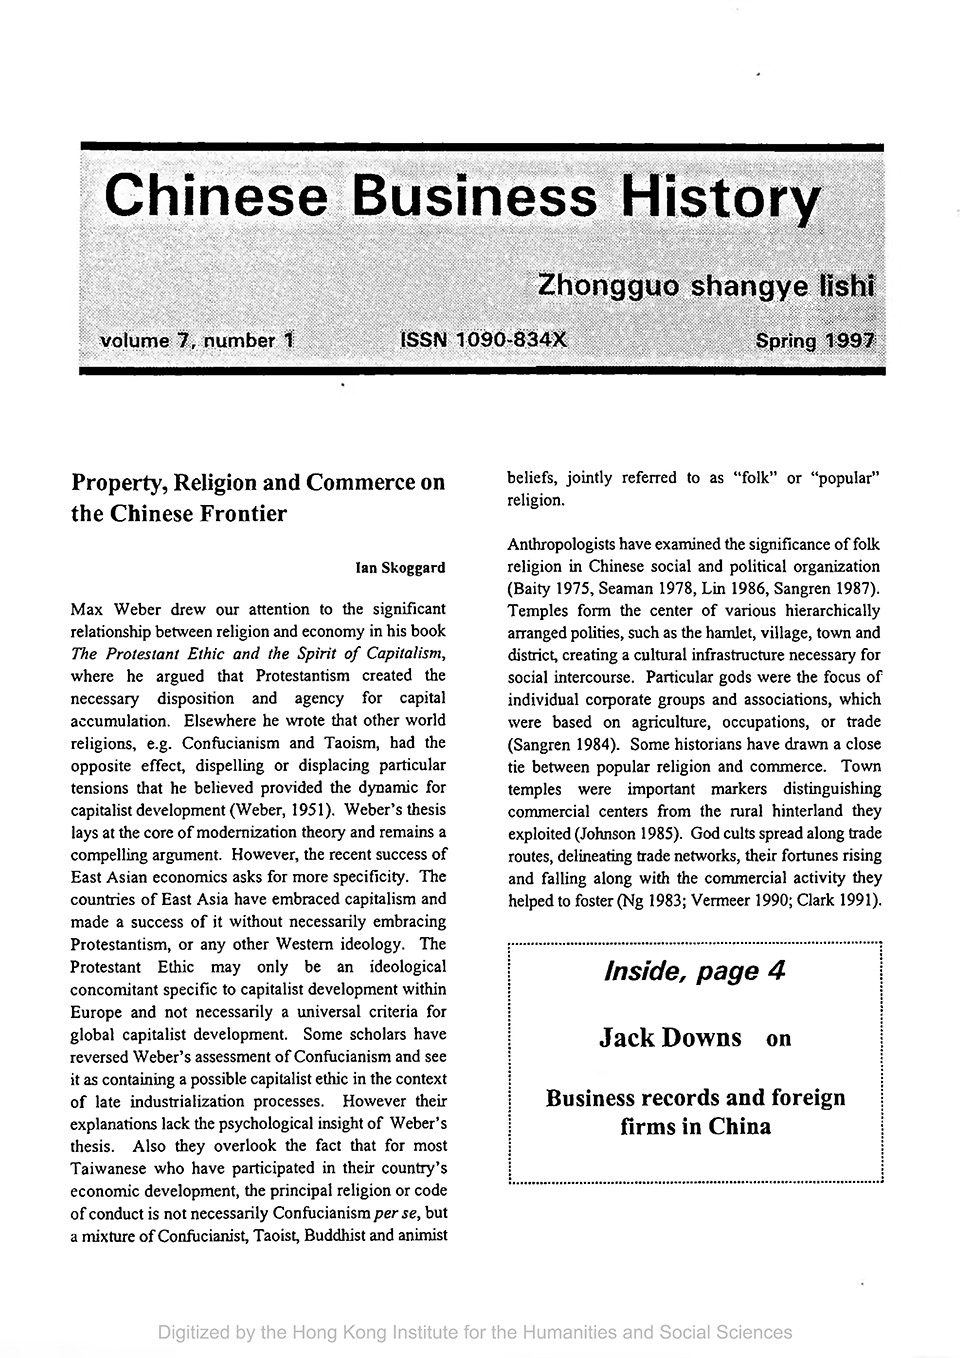 Cover of Chinese Business History Journal Volume 7, Number 1